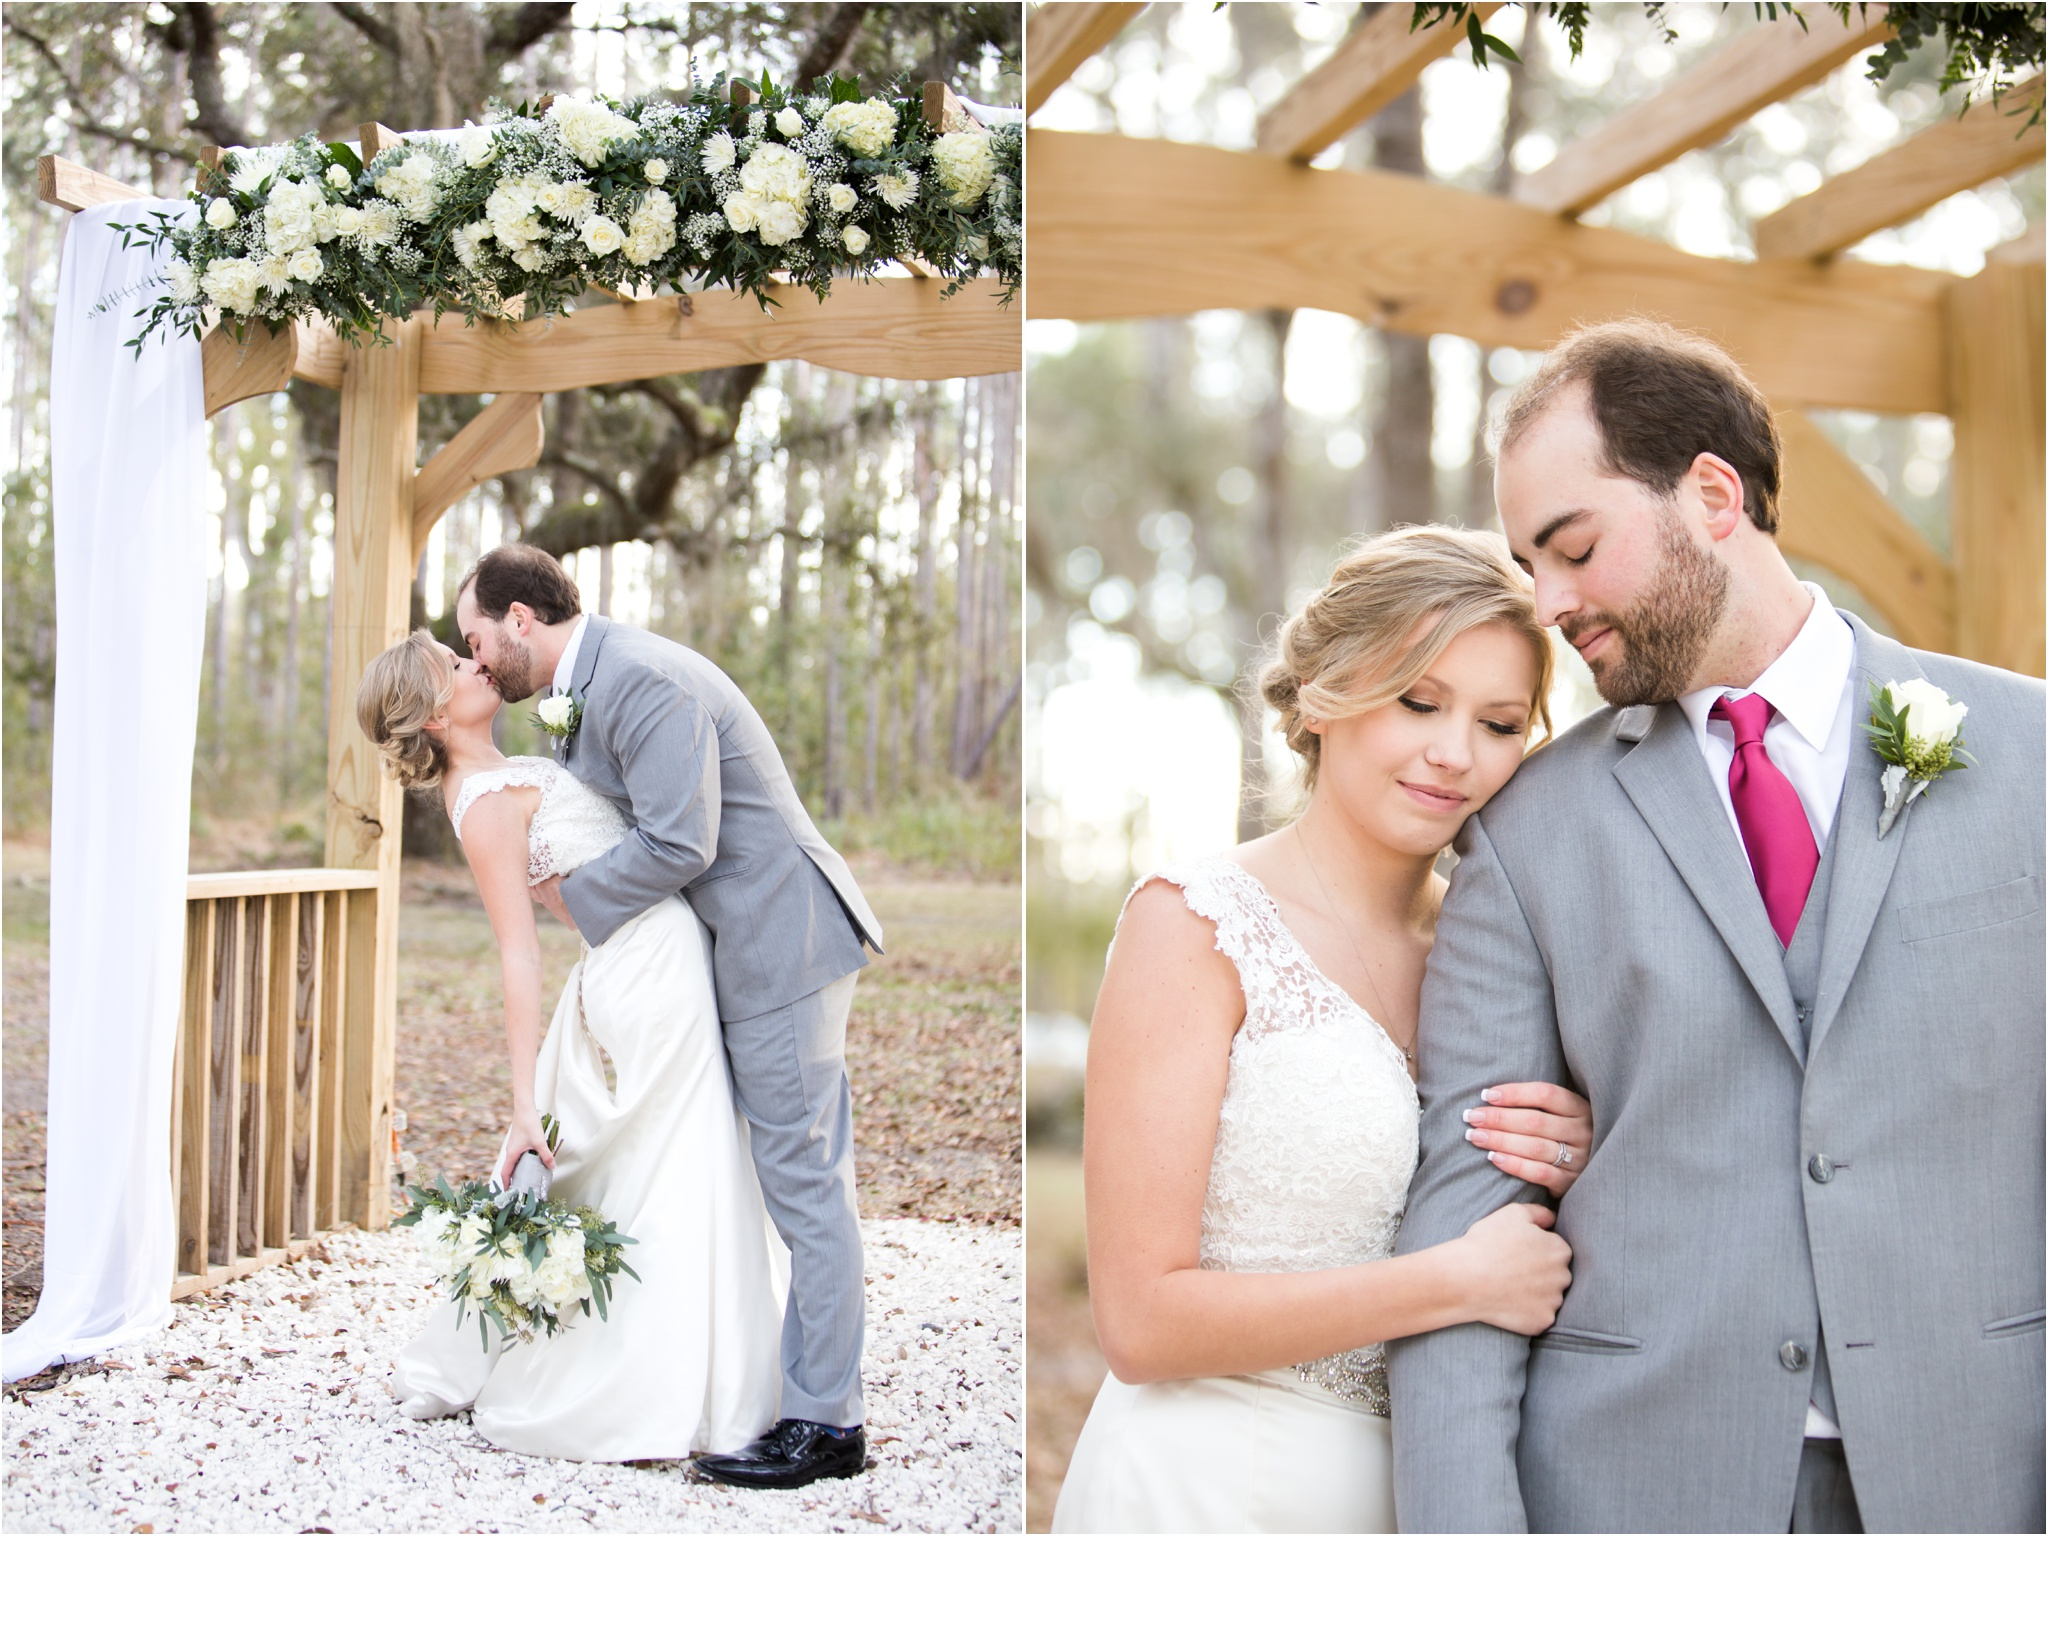 Rainey_Gregg_Photography_St._Simons_Island_Georgia_California_Wedding_Portrait_Photography_0497.jpg